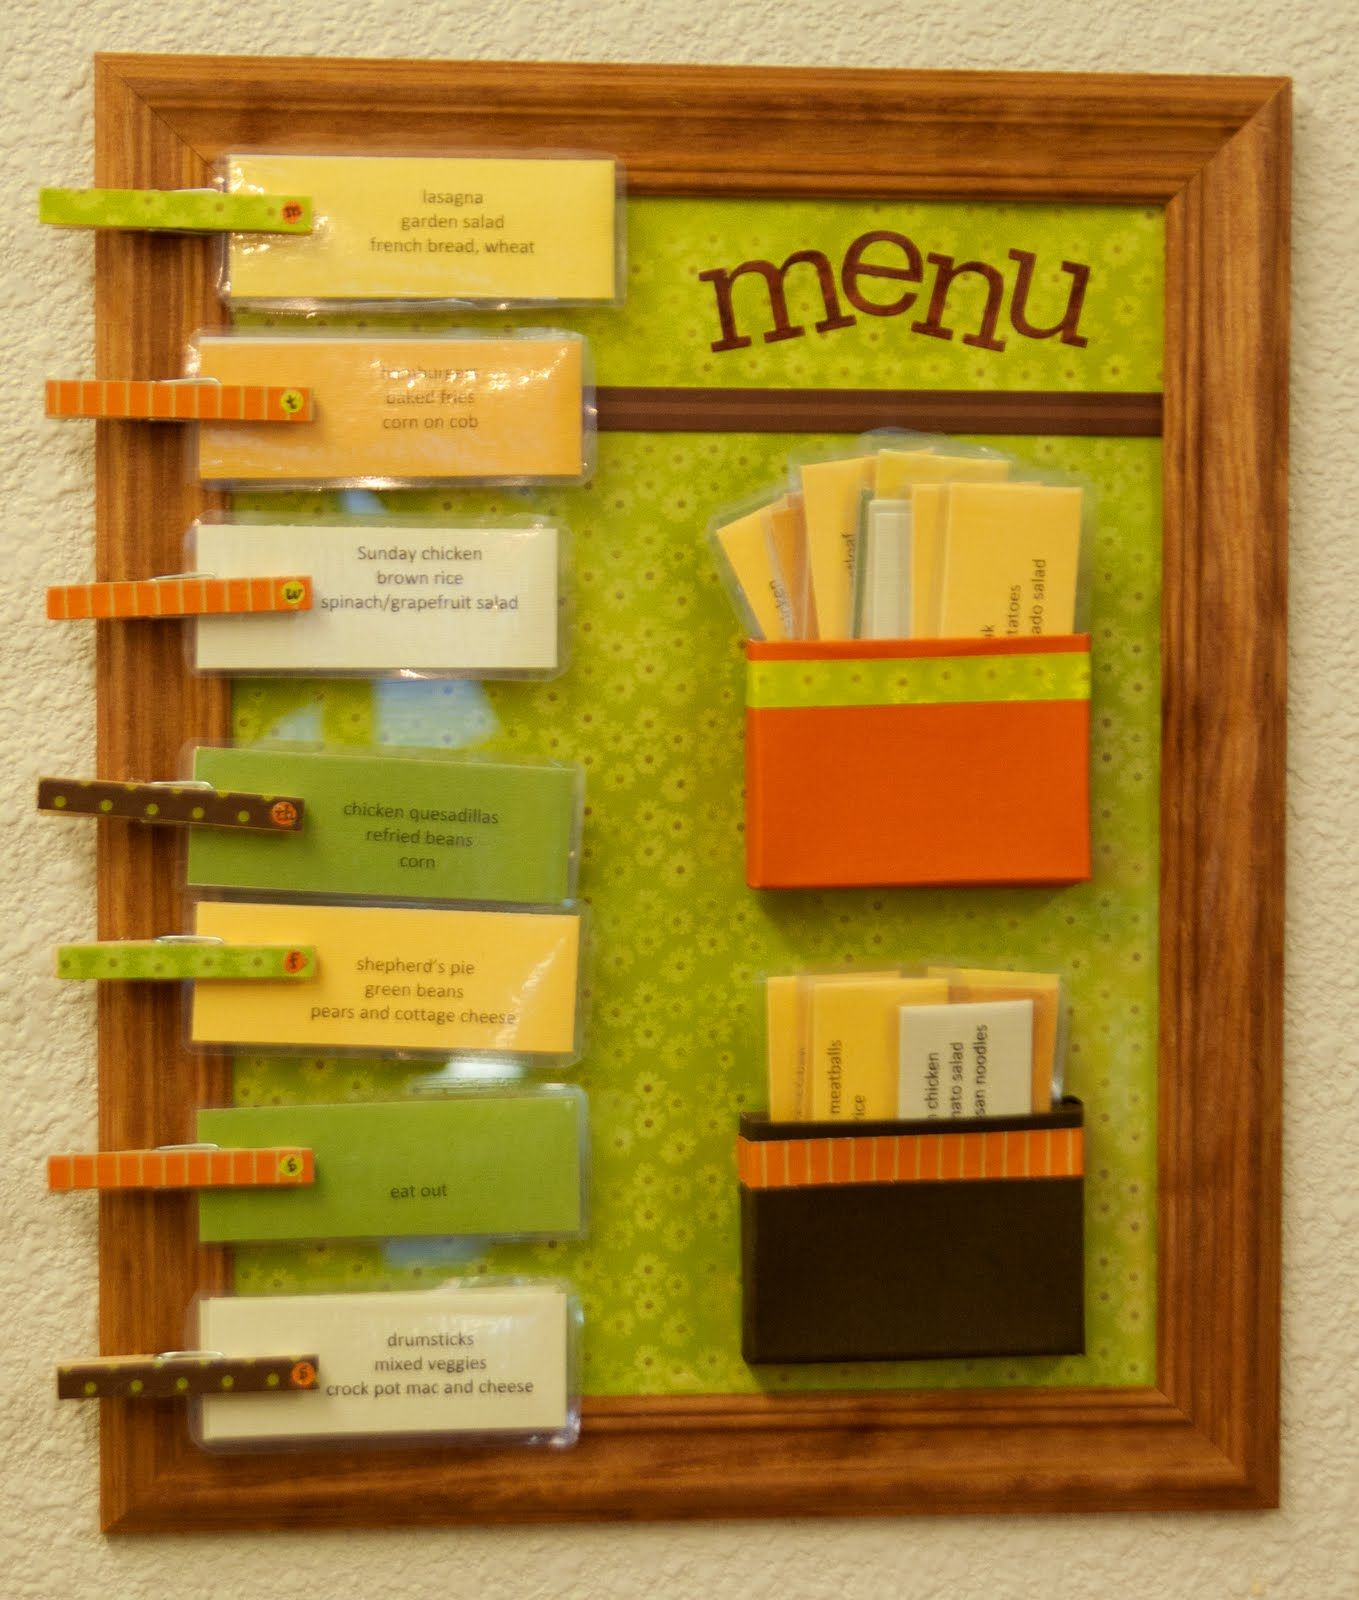 Meal planning for the week with the grocery needs for each meal on the back.#Repin By:Pinterest++ for iPad#